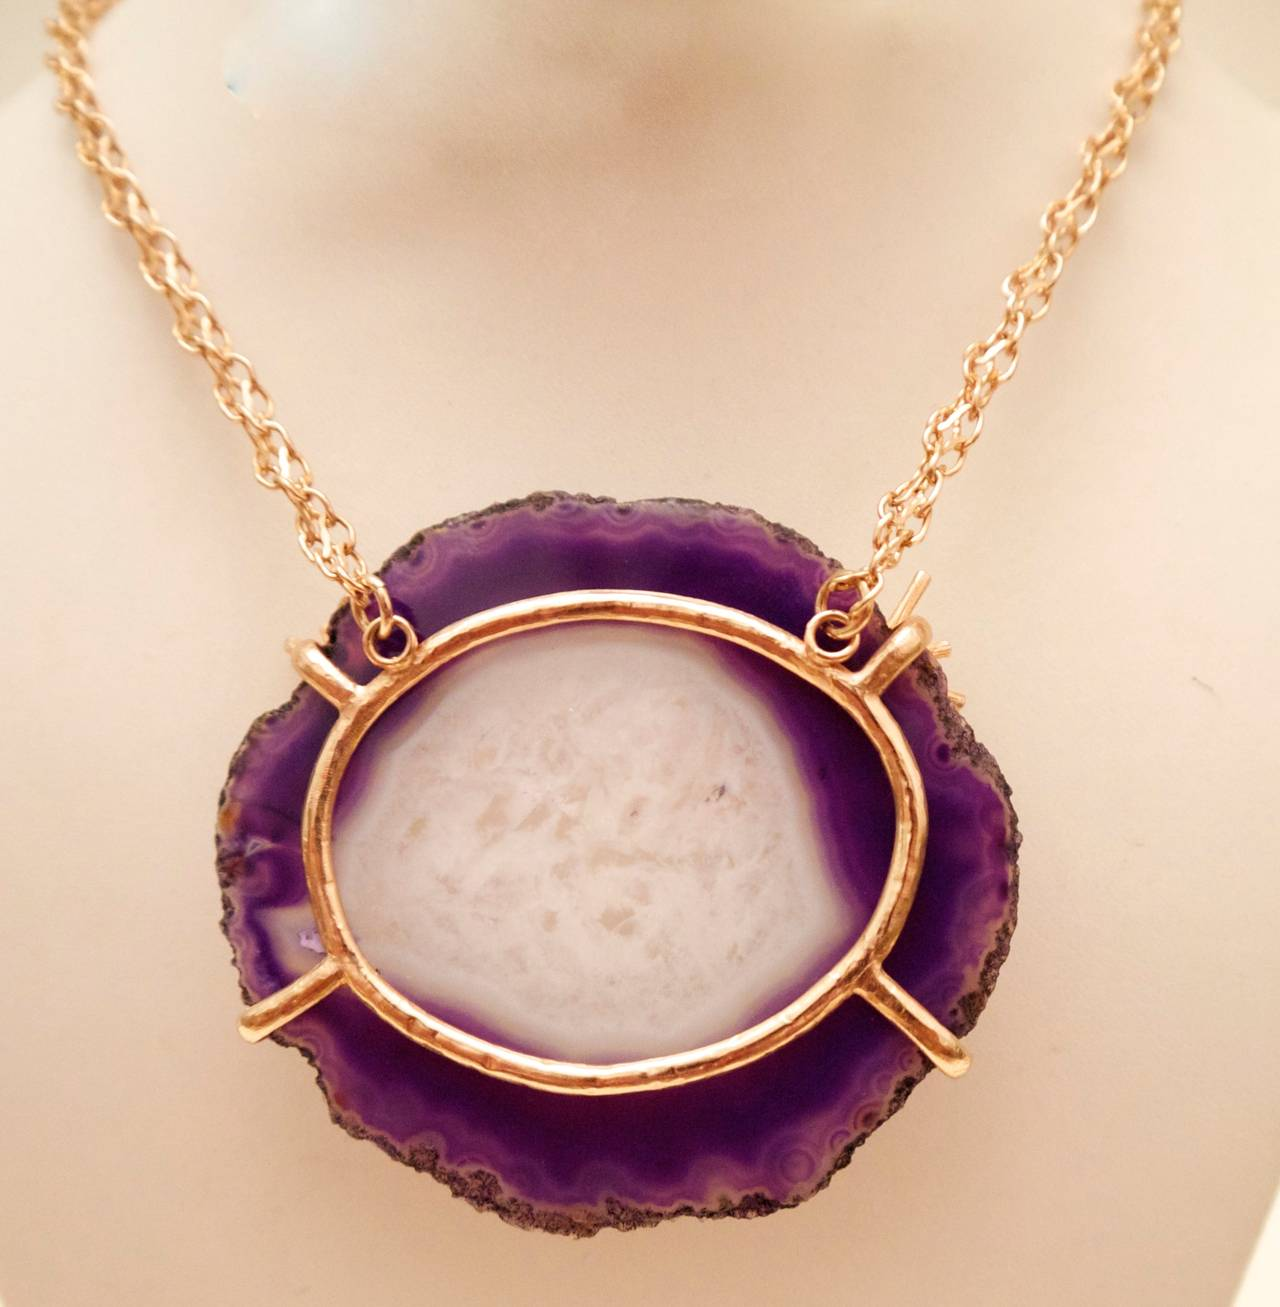 Chanel Purple and White Agate Cross Section Couture Necklace 2